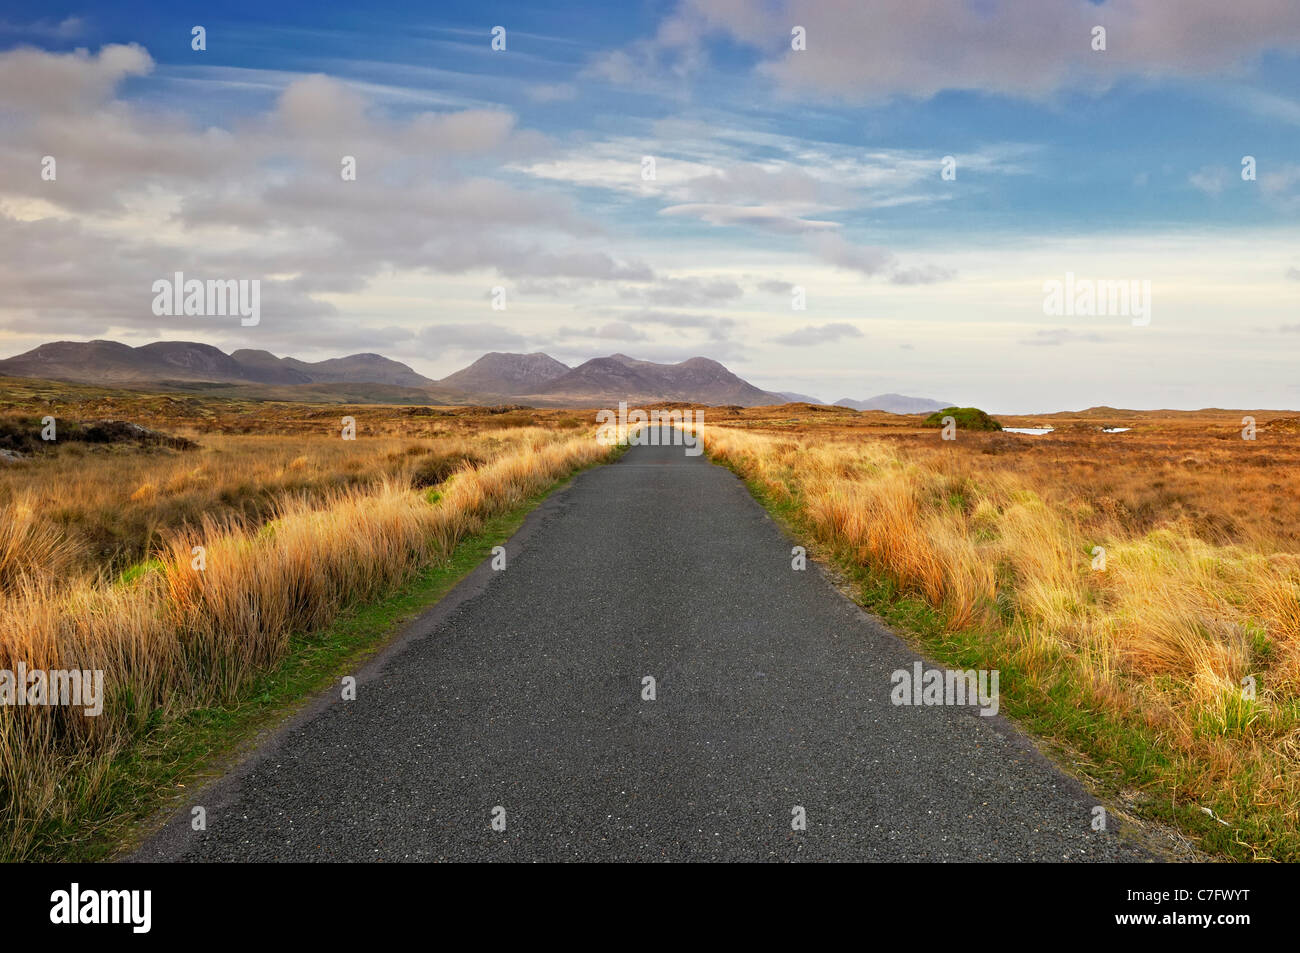 Road through bog landscape - Connemara, County Galway, Ireland - Stock Image